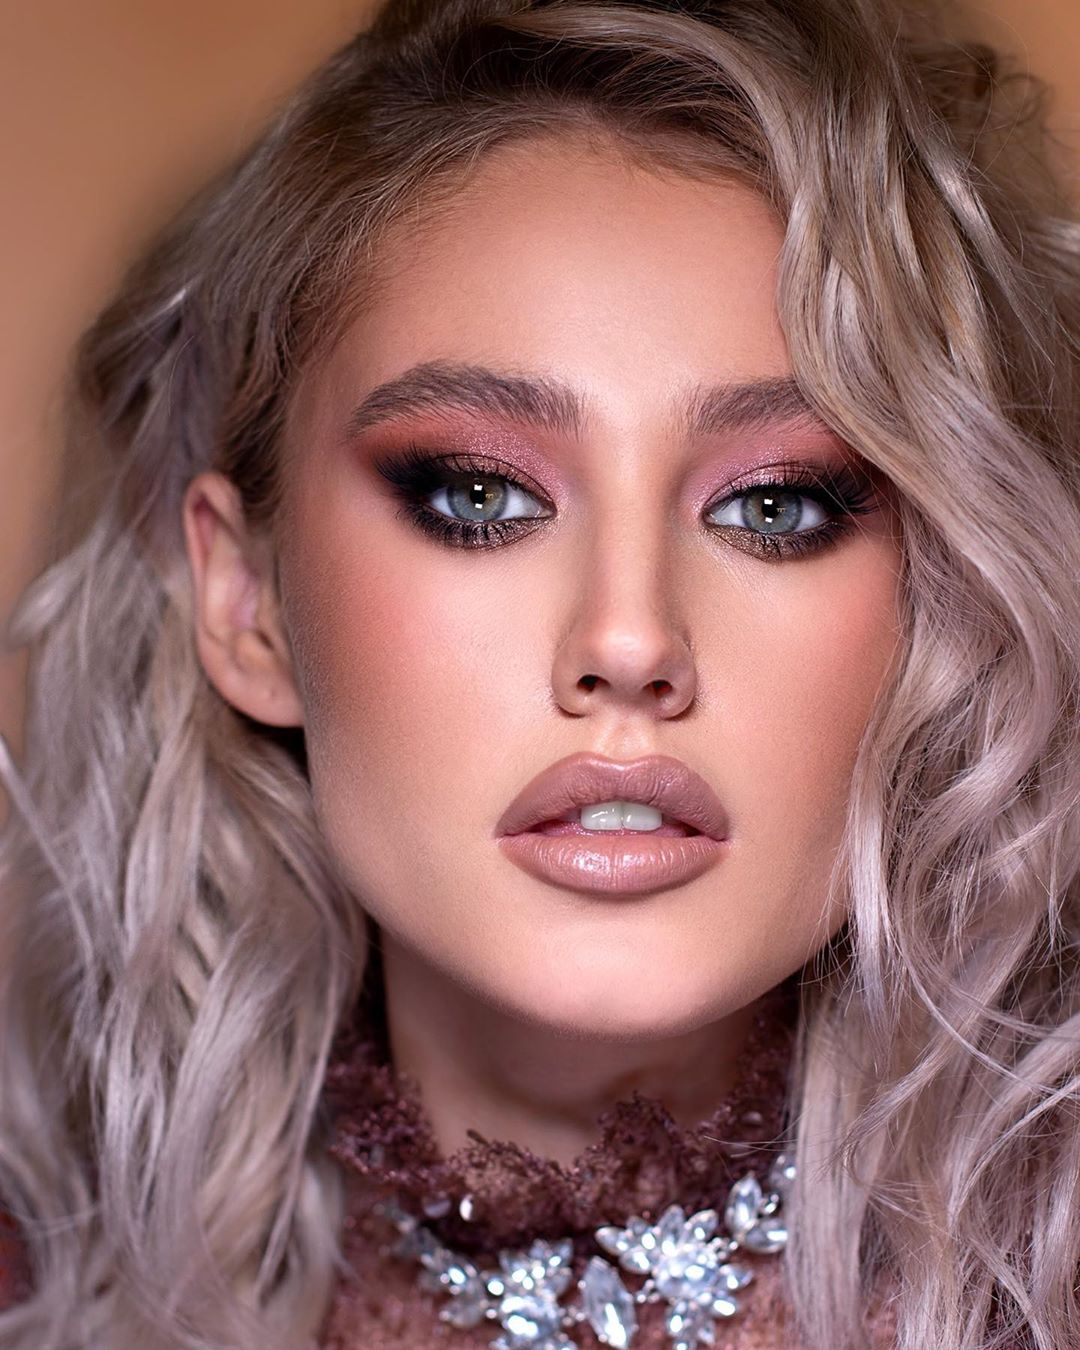 50+ Pretty Makeup Looks To Try In 2020 images 1